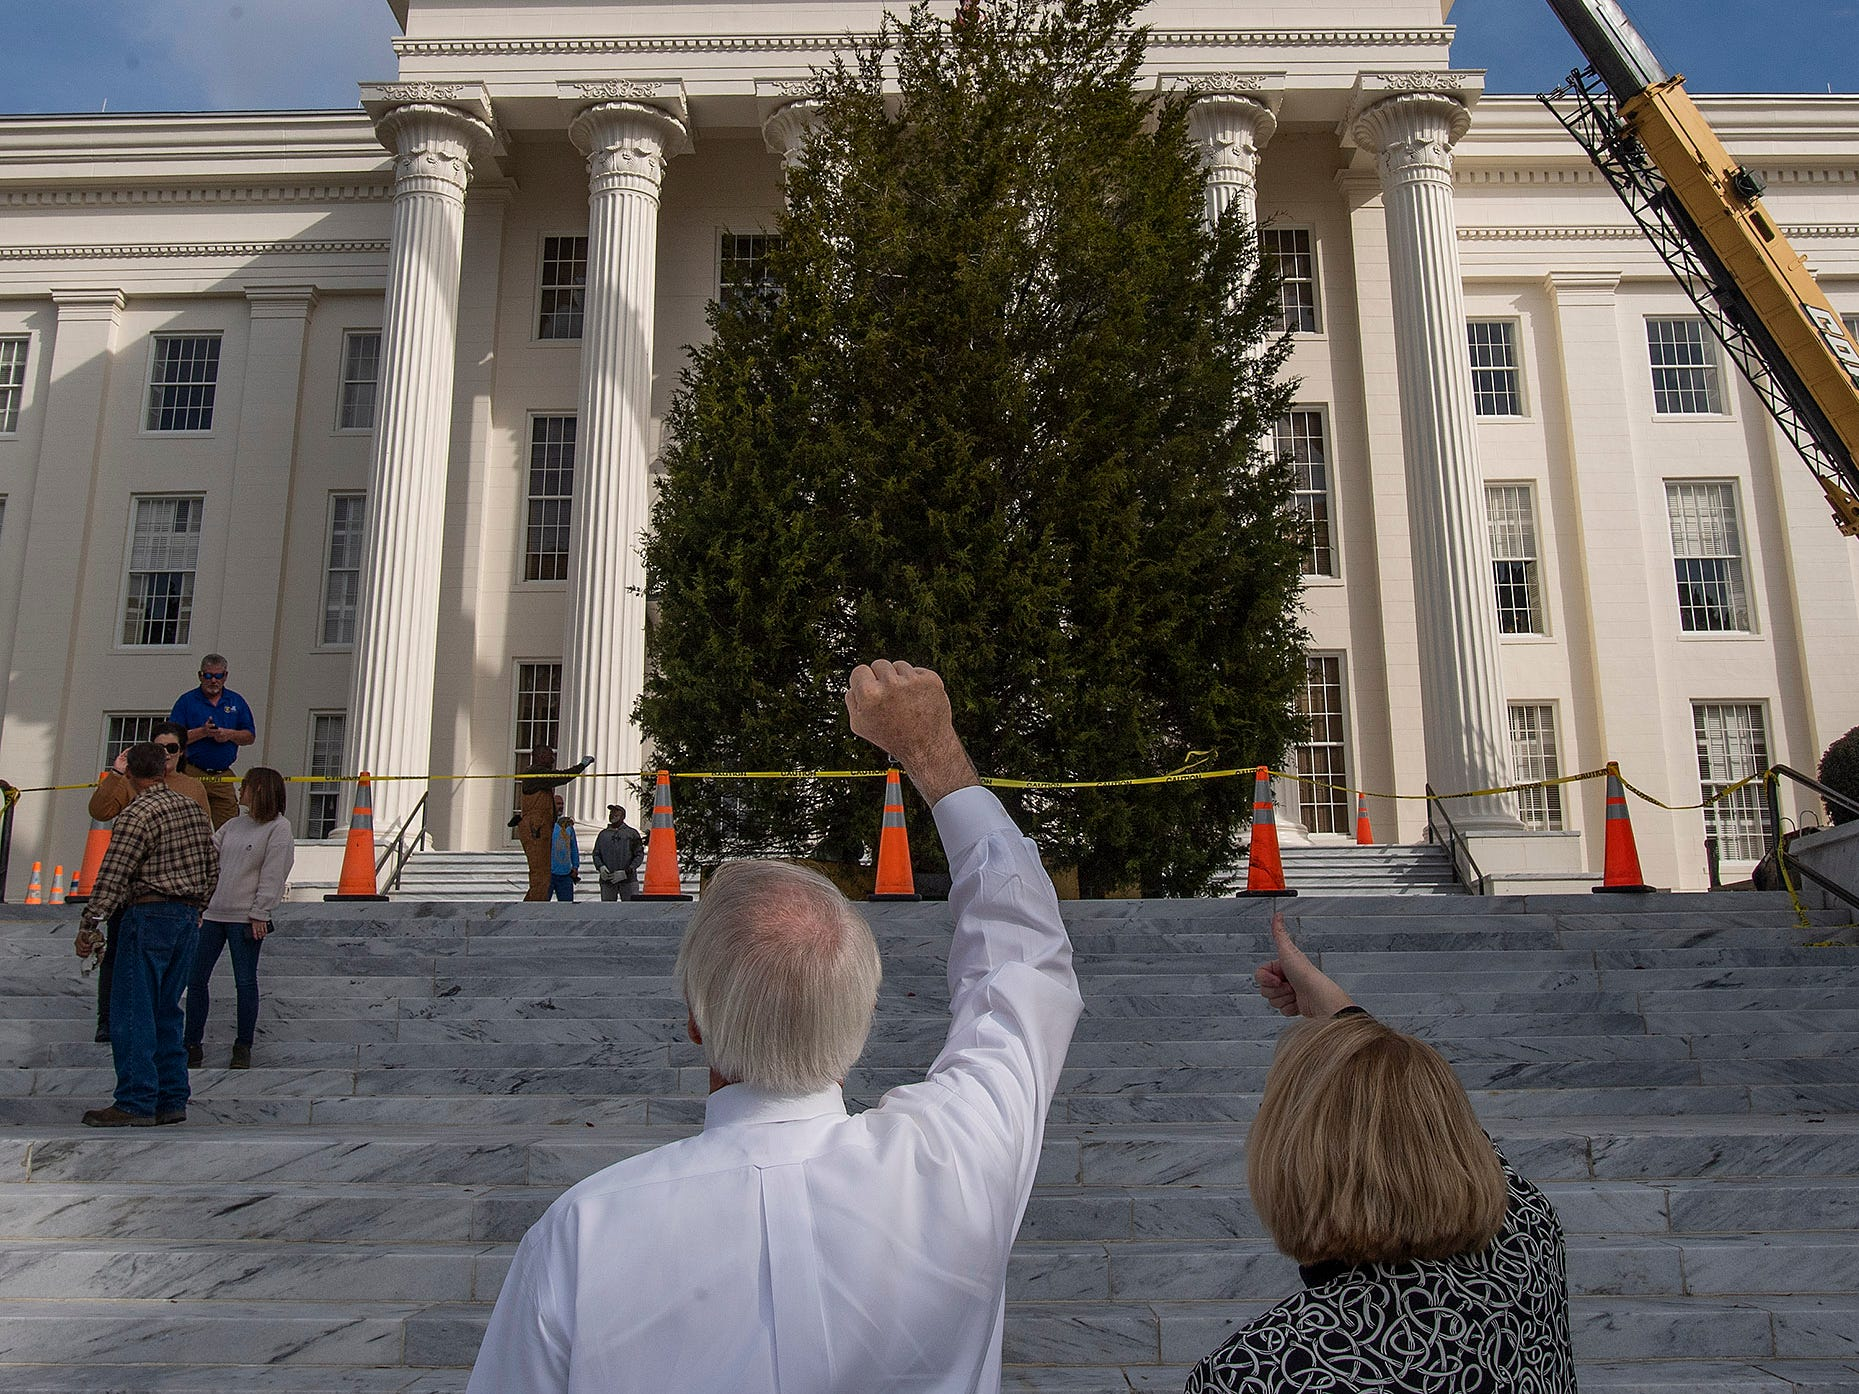 The State Capitol Christmas Tree is directed into place on the state capitol steps in Montgomery, Ala., on Thursday November 29, 2018. The tree will be decorated next week and the Tree Lighting will be held on Friday December 7.